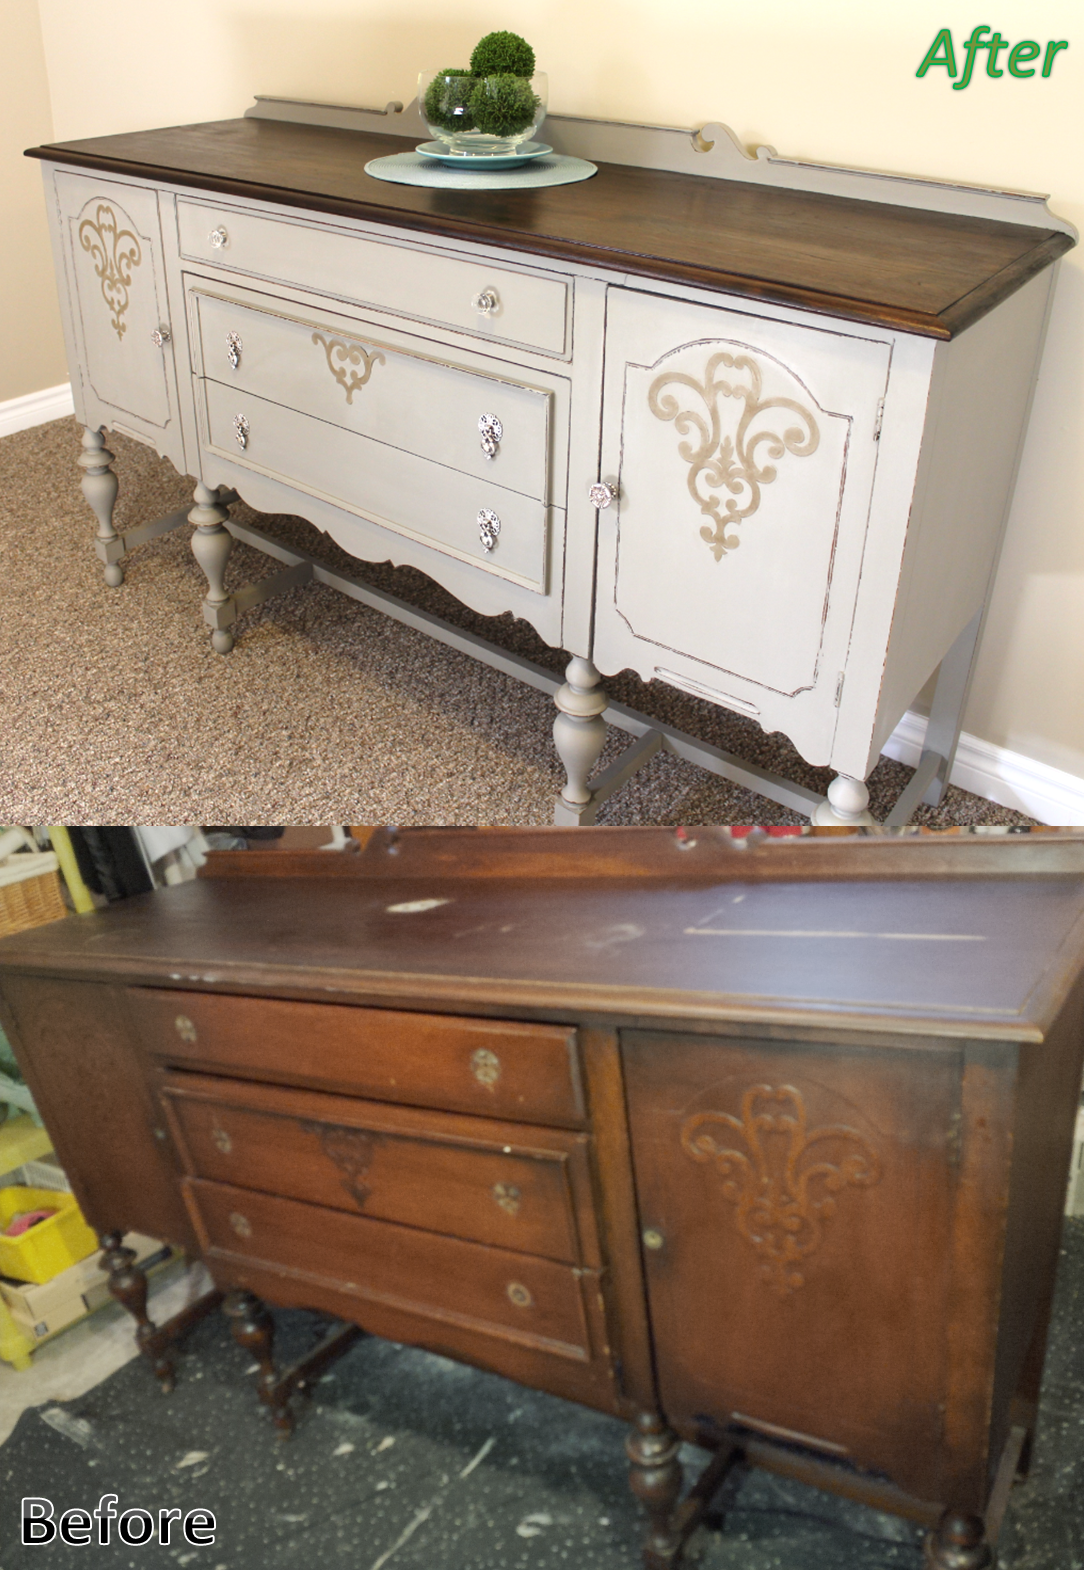 Before And After Antique Solid Cherry Refinished Sideboard Buffet Annie Sloan Chalk Paint In F Cherry Wood Furniture Staining Furniture Wood Bedroom Decor